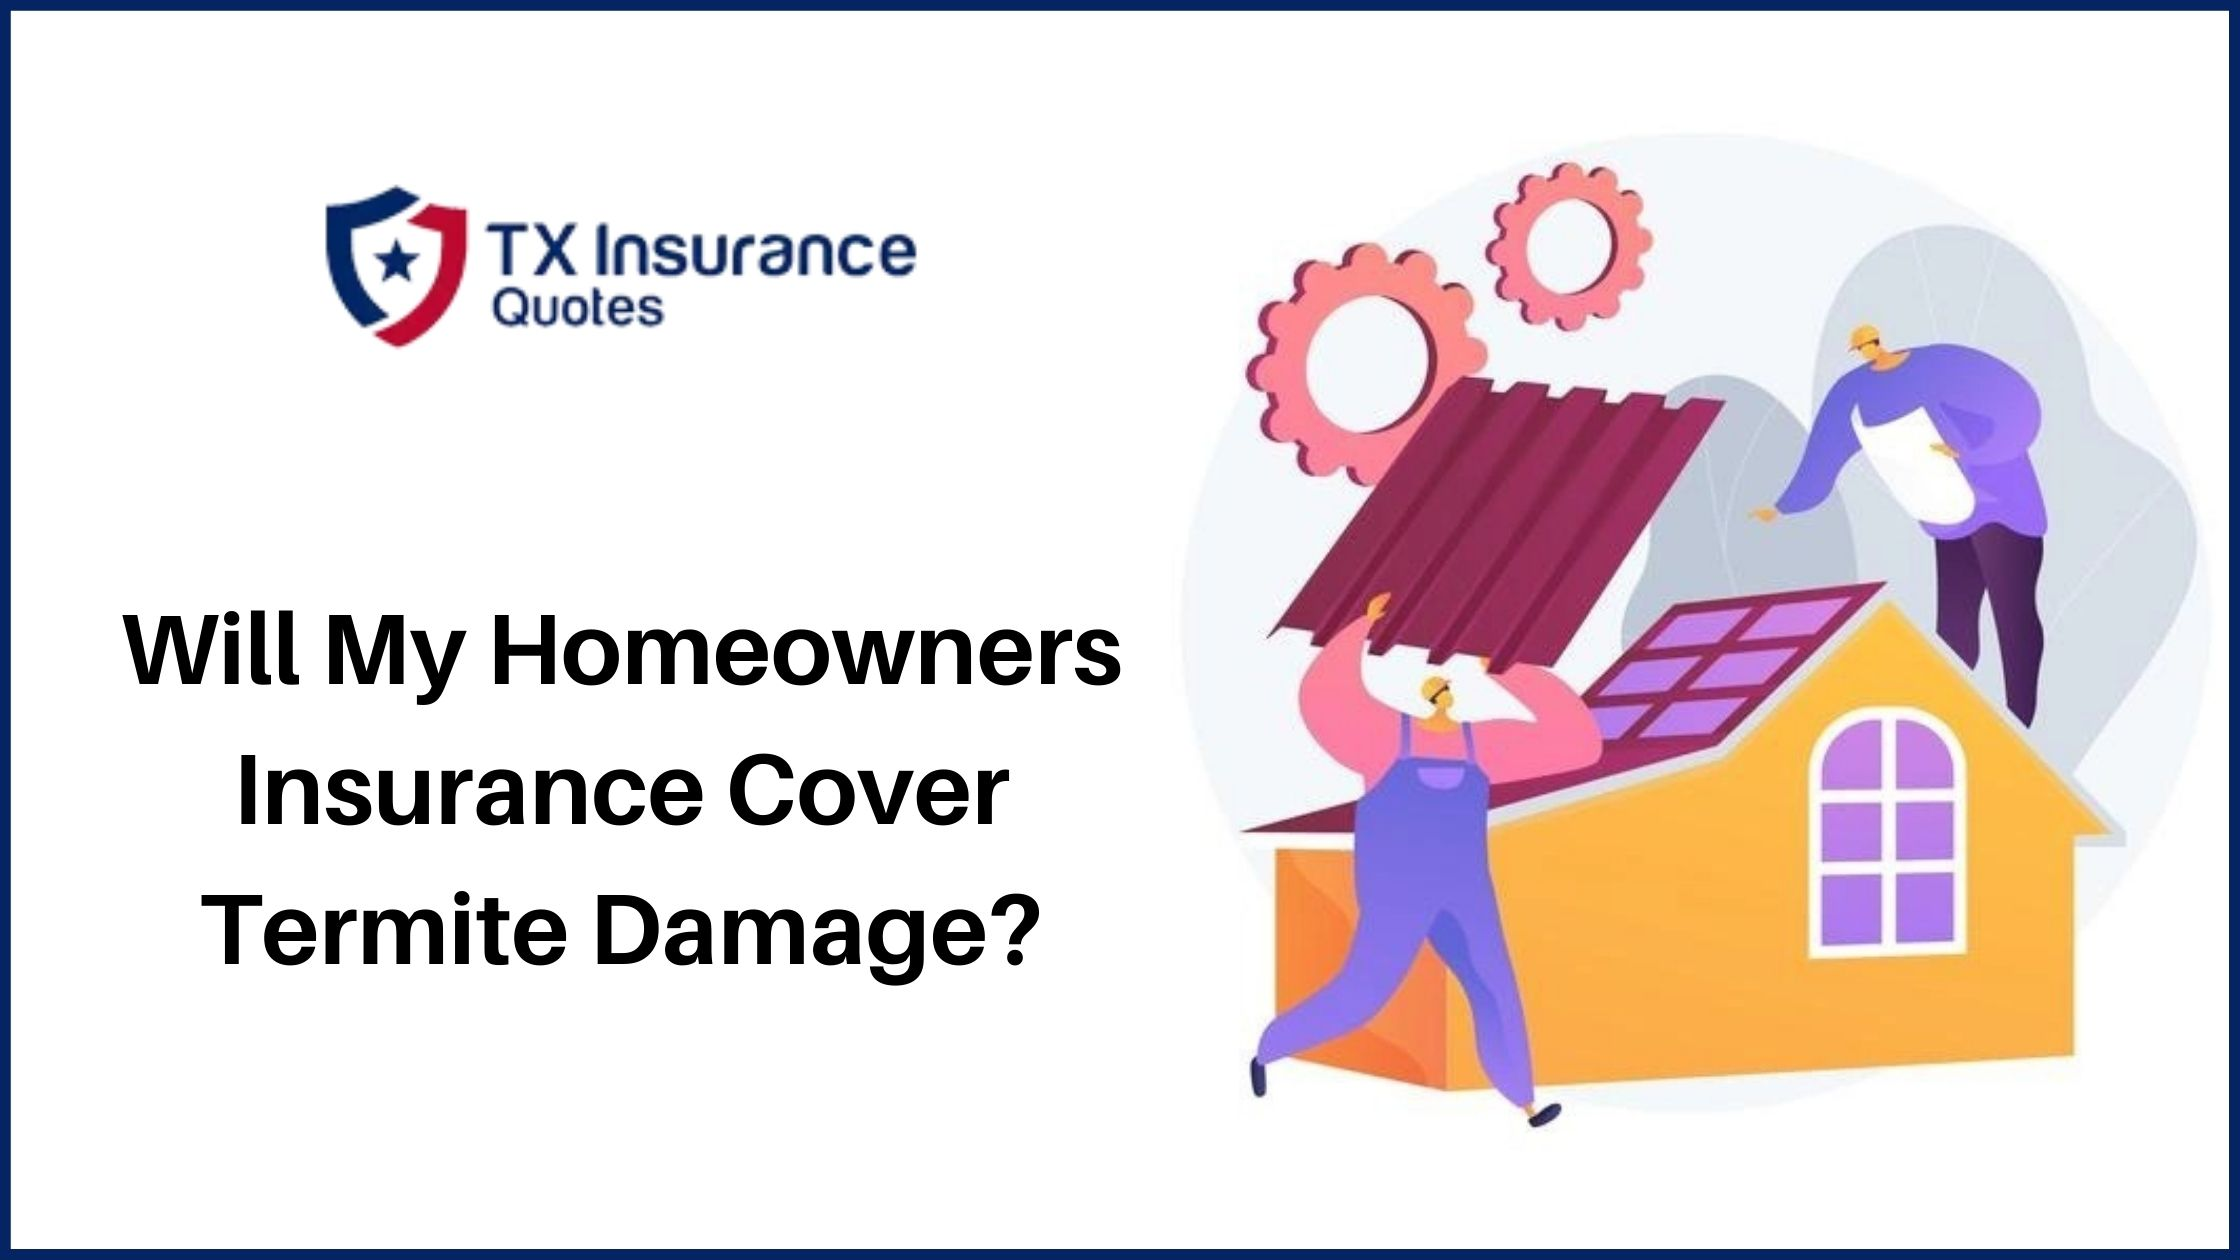 Will My Homeowners Insurance Cover Termite Damage?